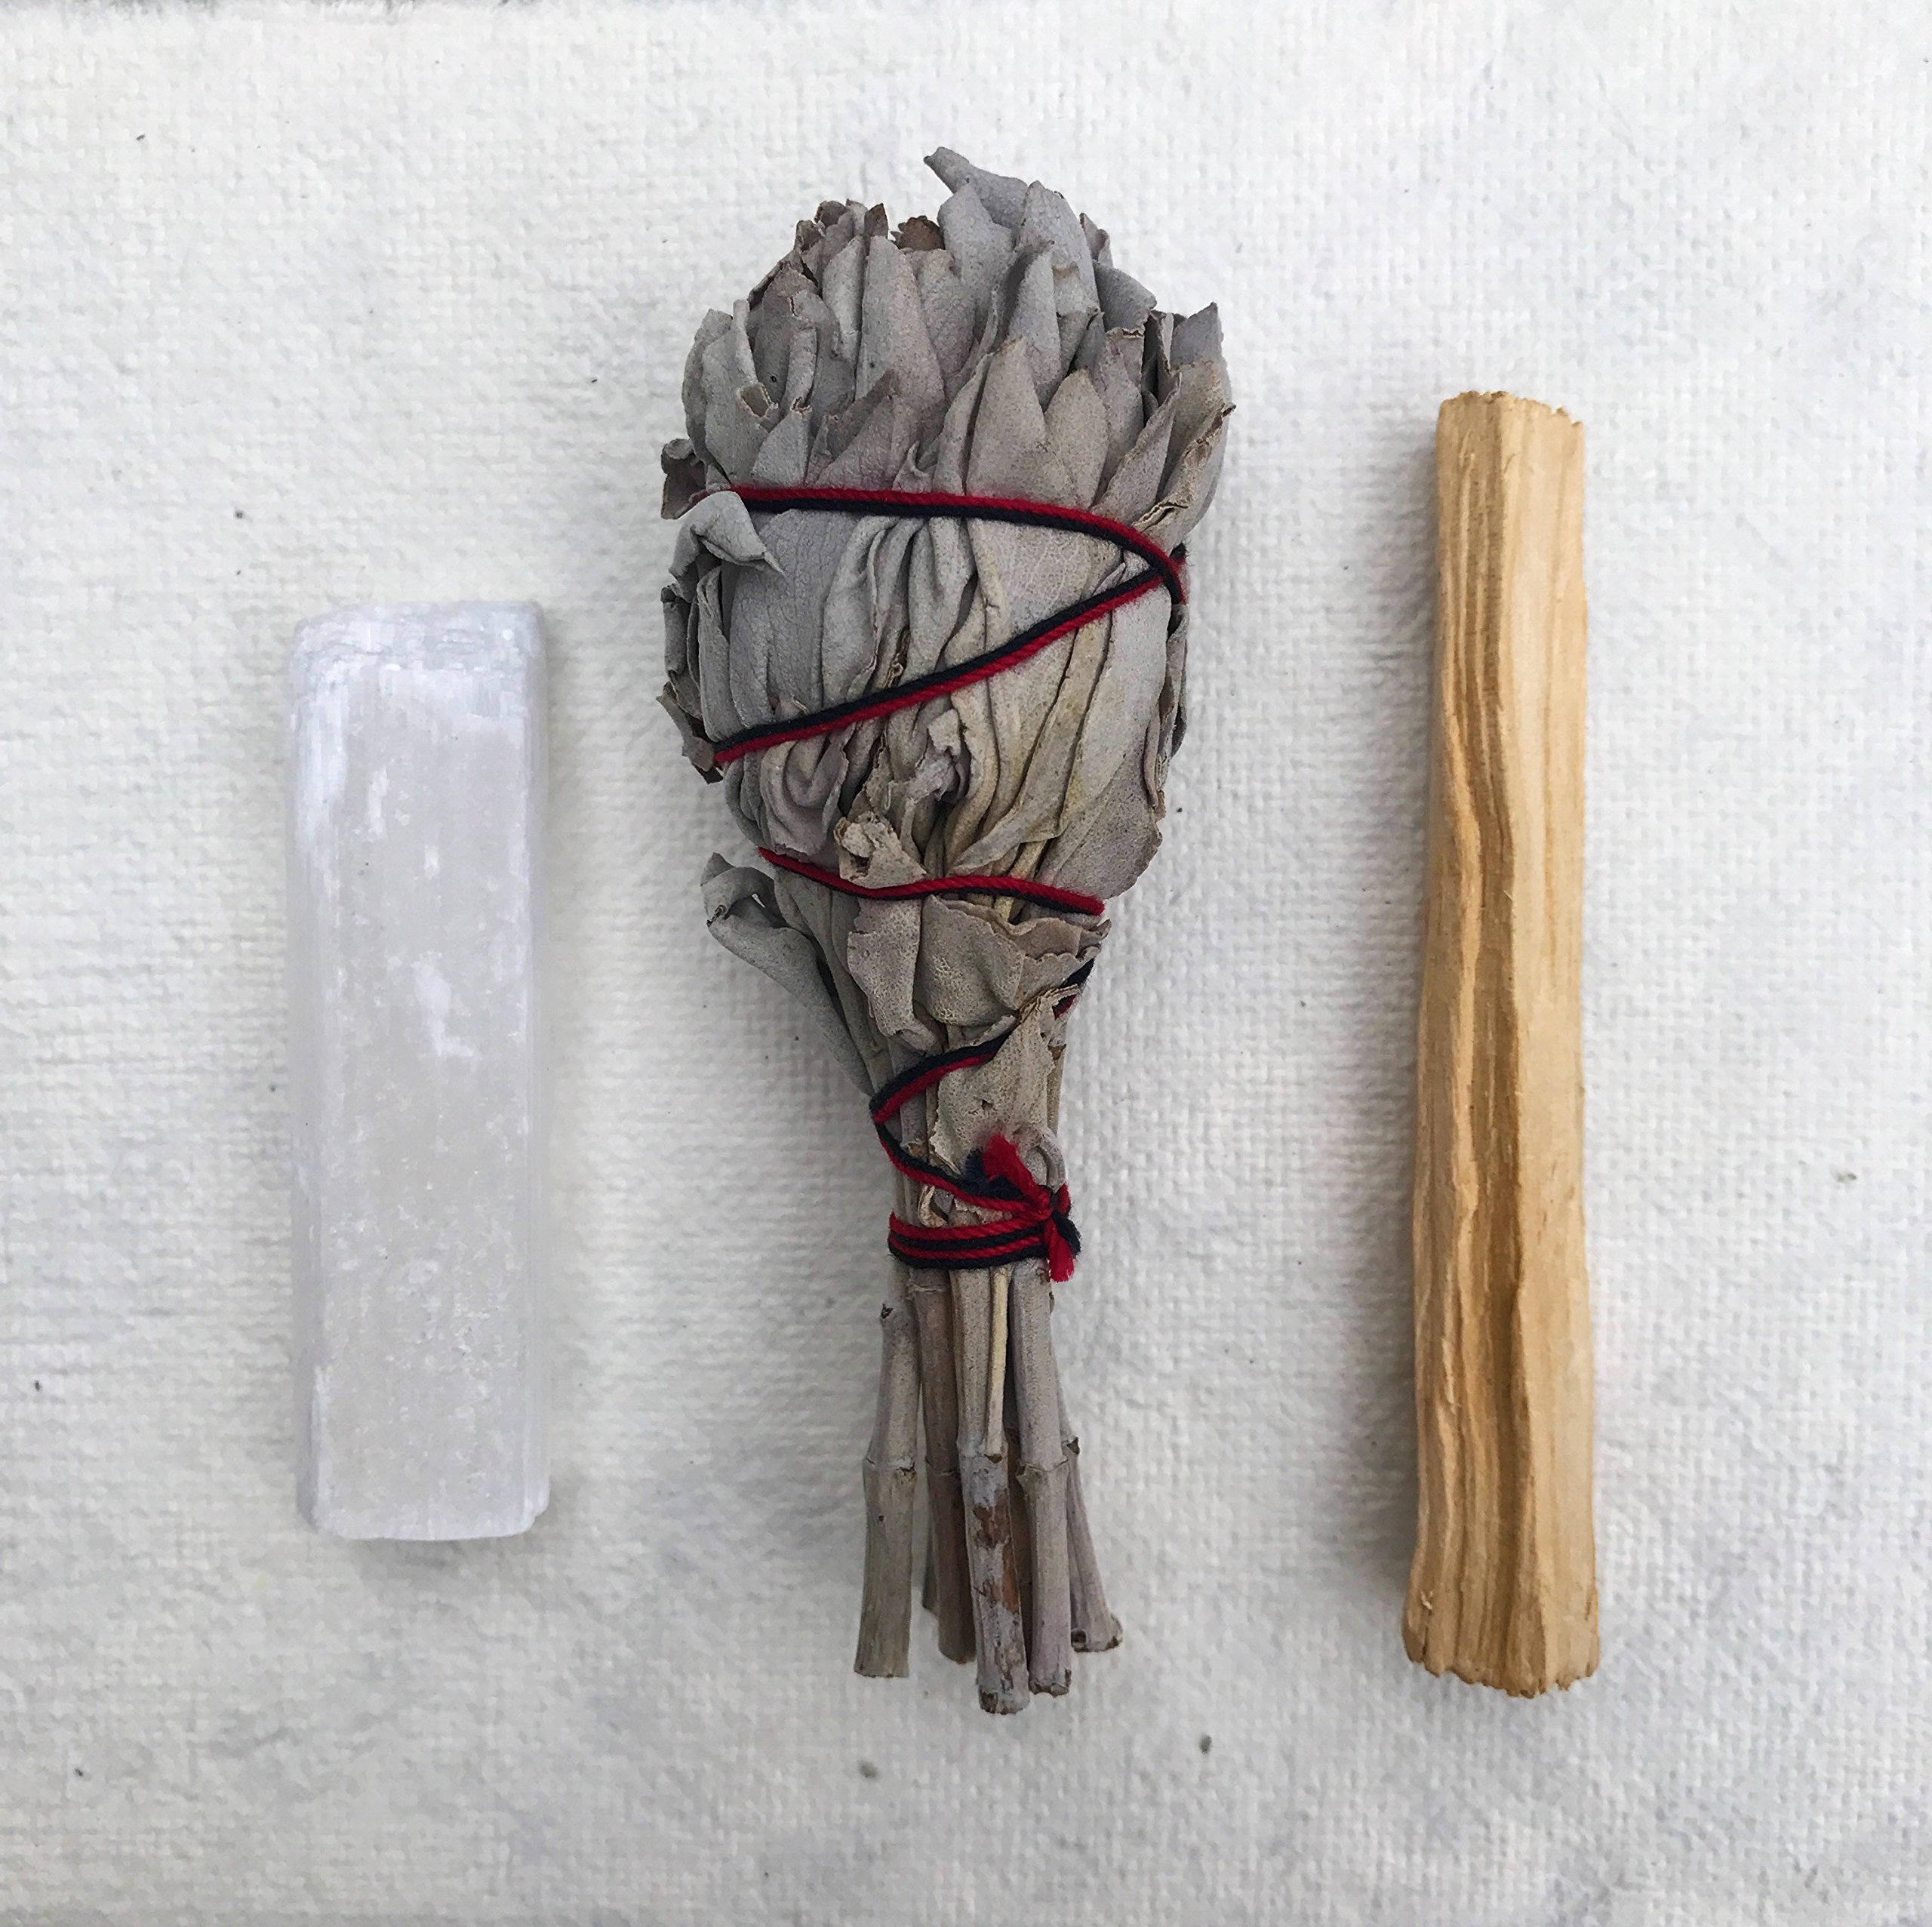 Sage Smudge Stick Kit - White Sage, Palo Santo, Mini Sage, Sage and Sweetgrass Smudging Sticks PLUS a Selenite Crystal & How to Guide for Cleansing your Home - Hand tied in California (Selenite) by Maha Living (Image #2)